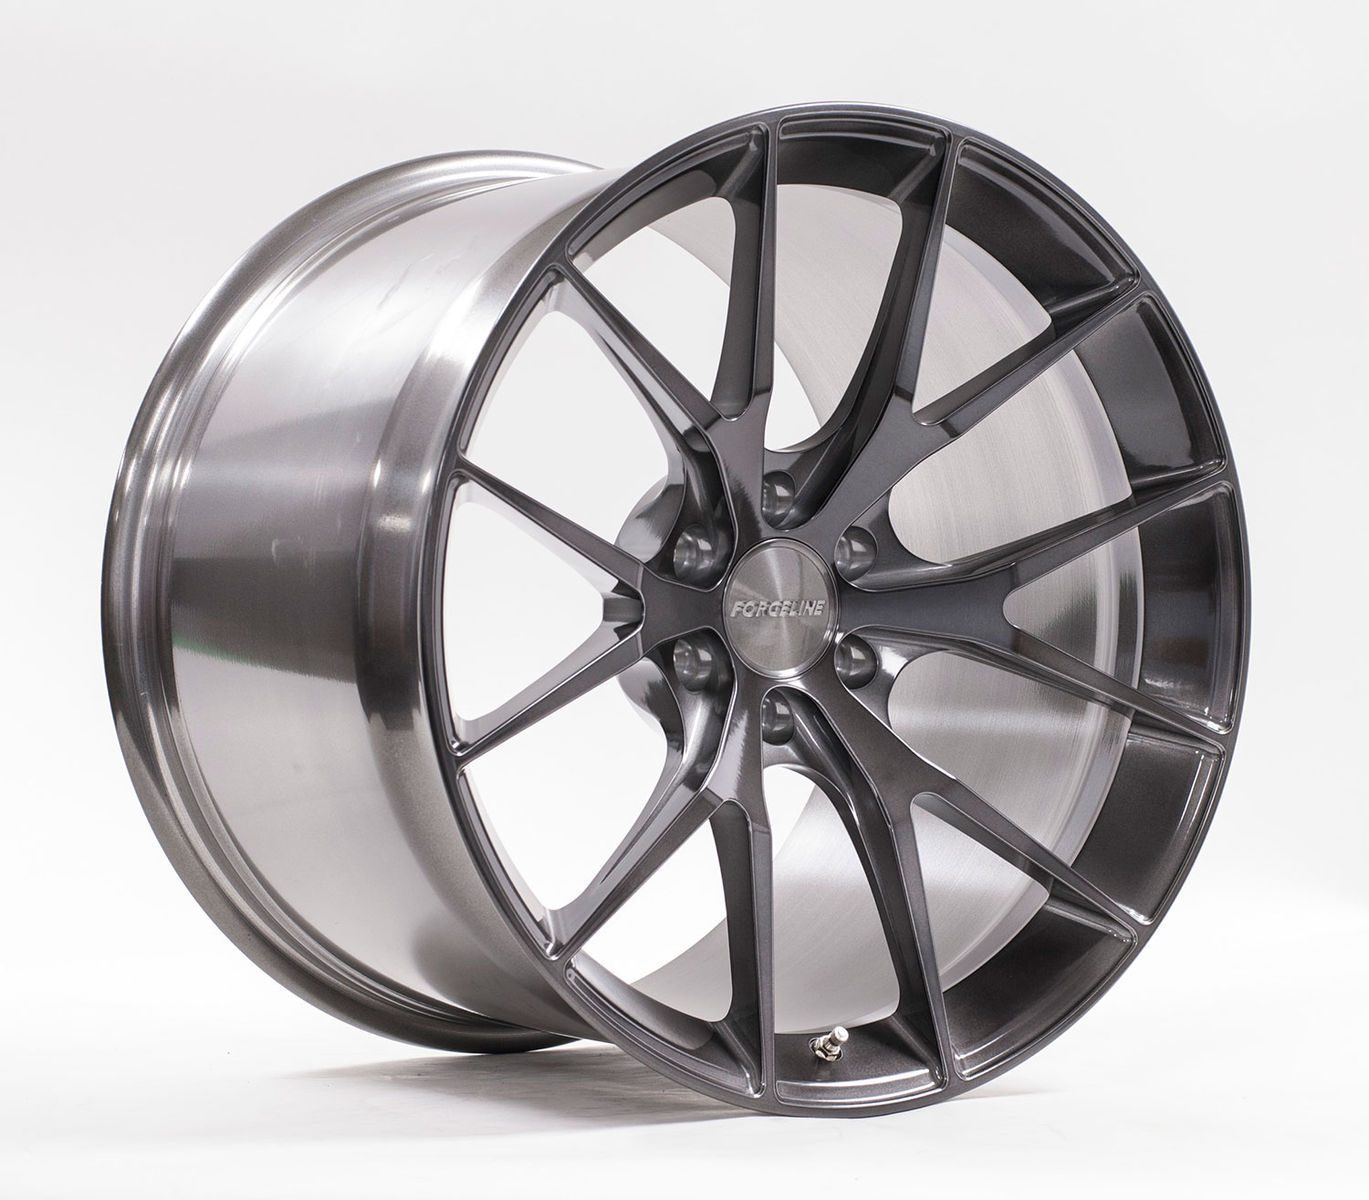 | Forgeline Debuts Seven New Wheels at the 2016 SEMA Show